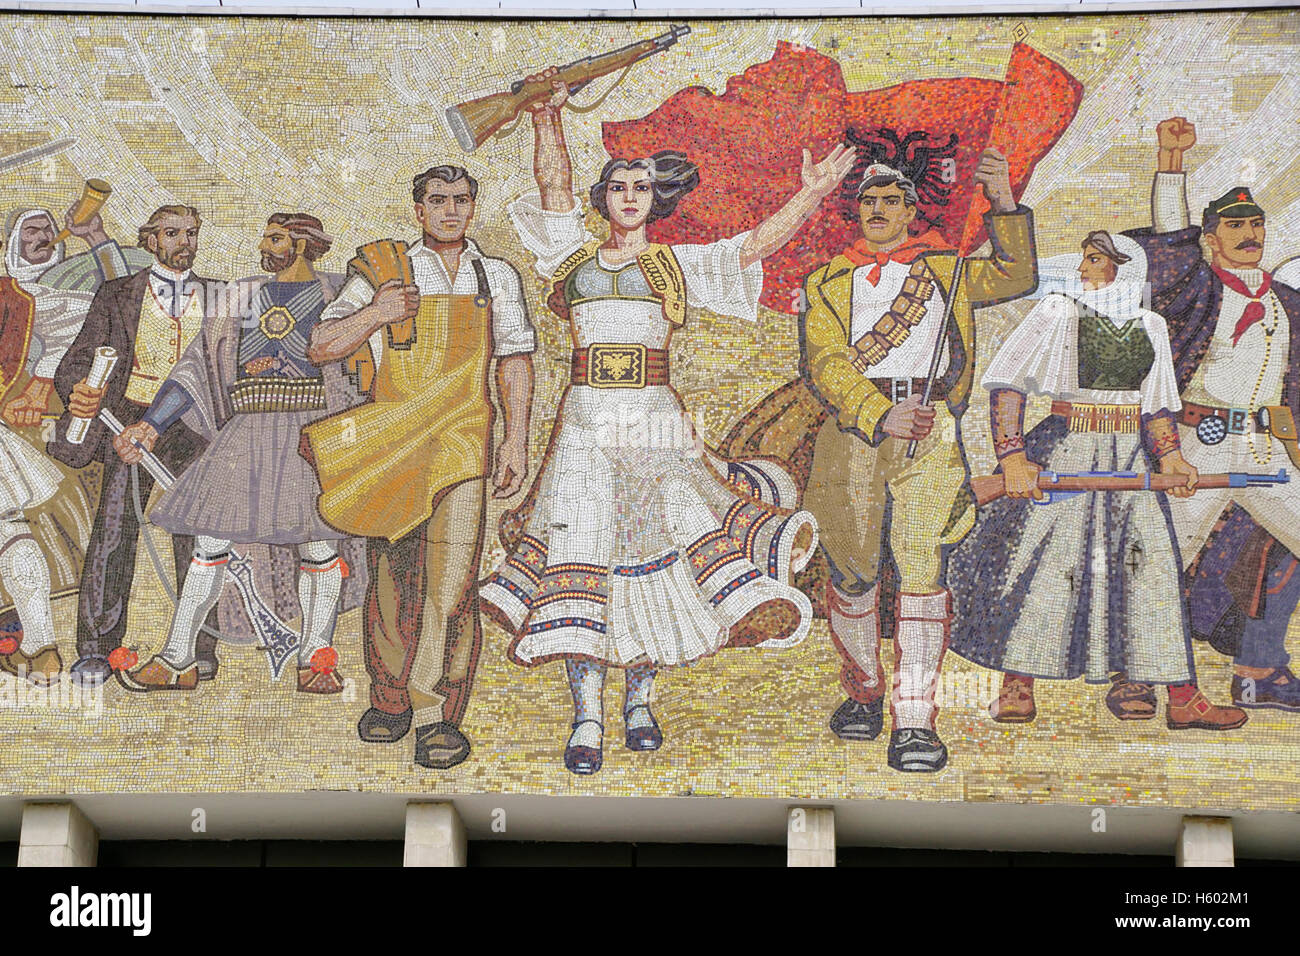 Socialist realism mosaic of 'The Albanians' on National History Museum in Tirana. - Stock Image